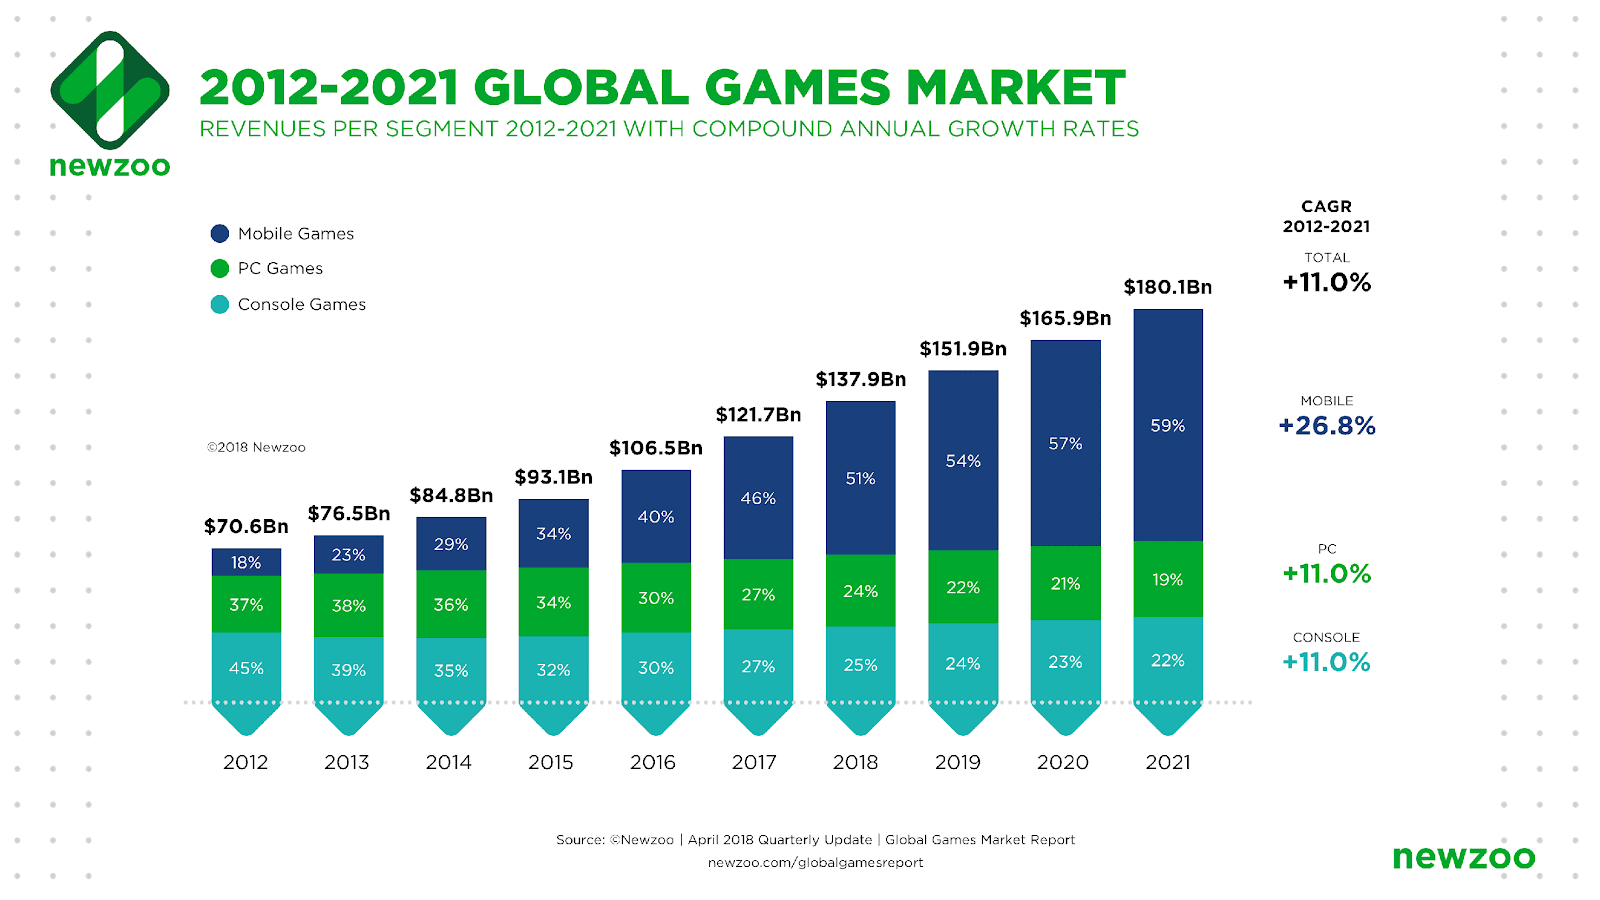 Global_Games_Market_2012-2021_per_Segment